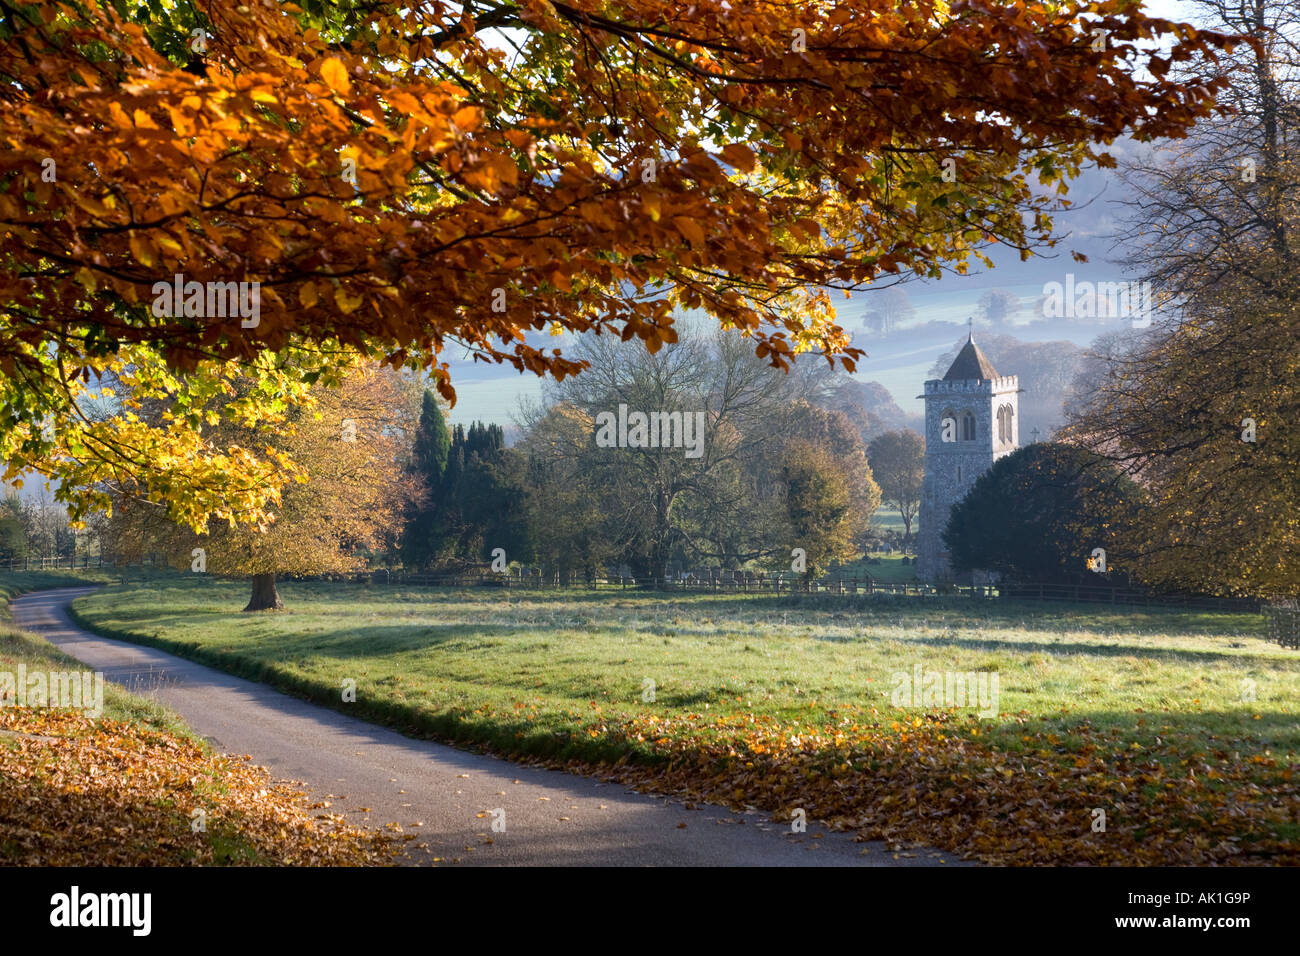 Autumn in Hughenden Valley, High Wycombe, Buckinghamshire, UK. The church is St Michael & All Angels. - Stock Image